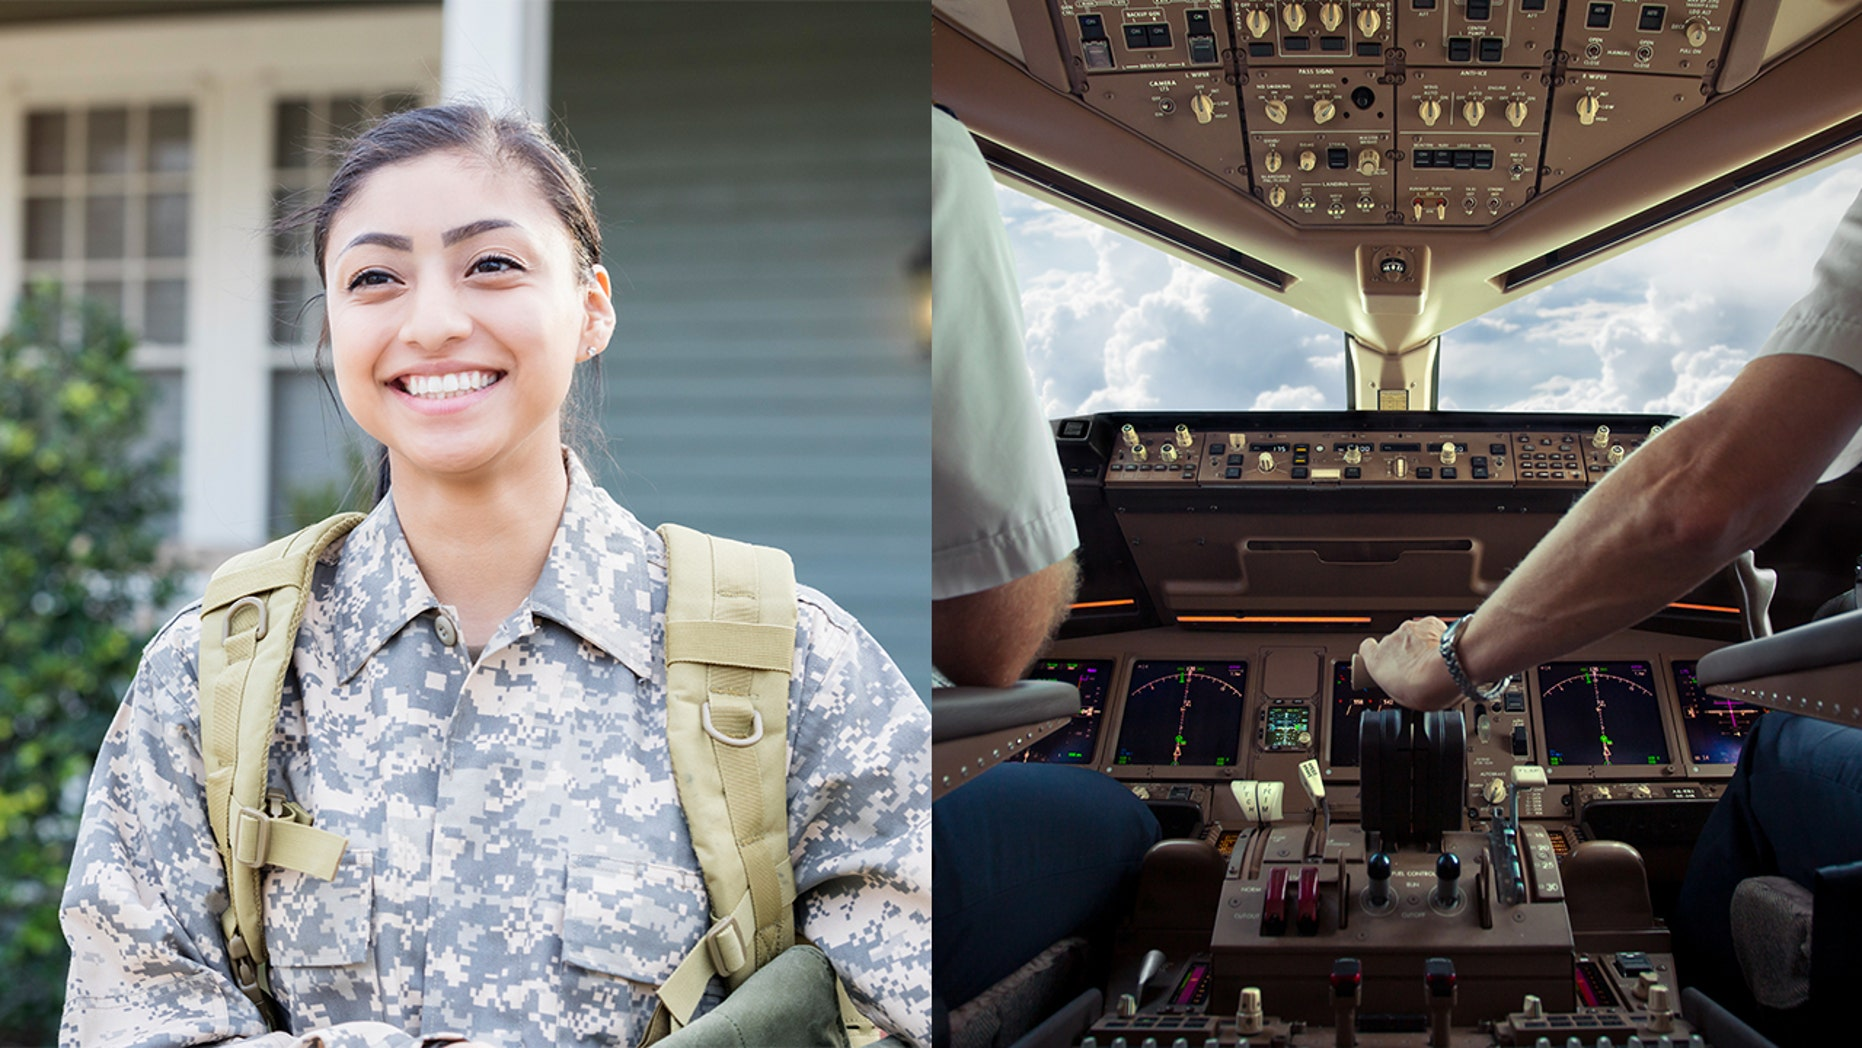 Forces to Flyers will train 40 veterans to become pilots.